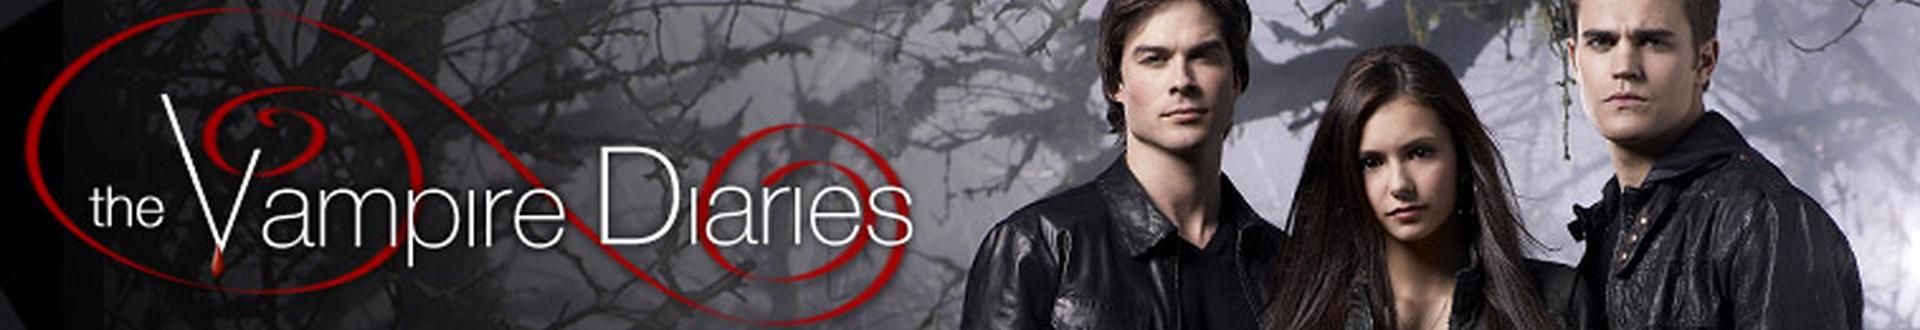 Image illustrative de The Vampire Diaries